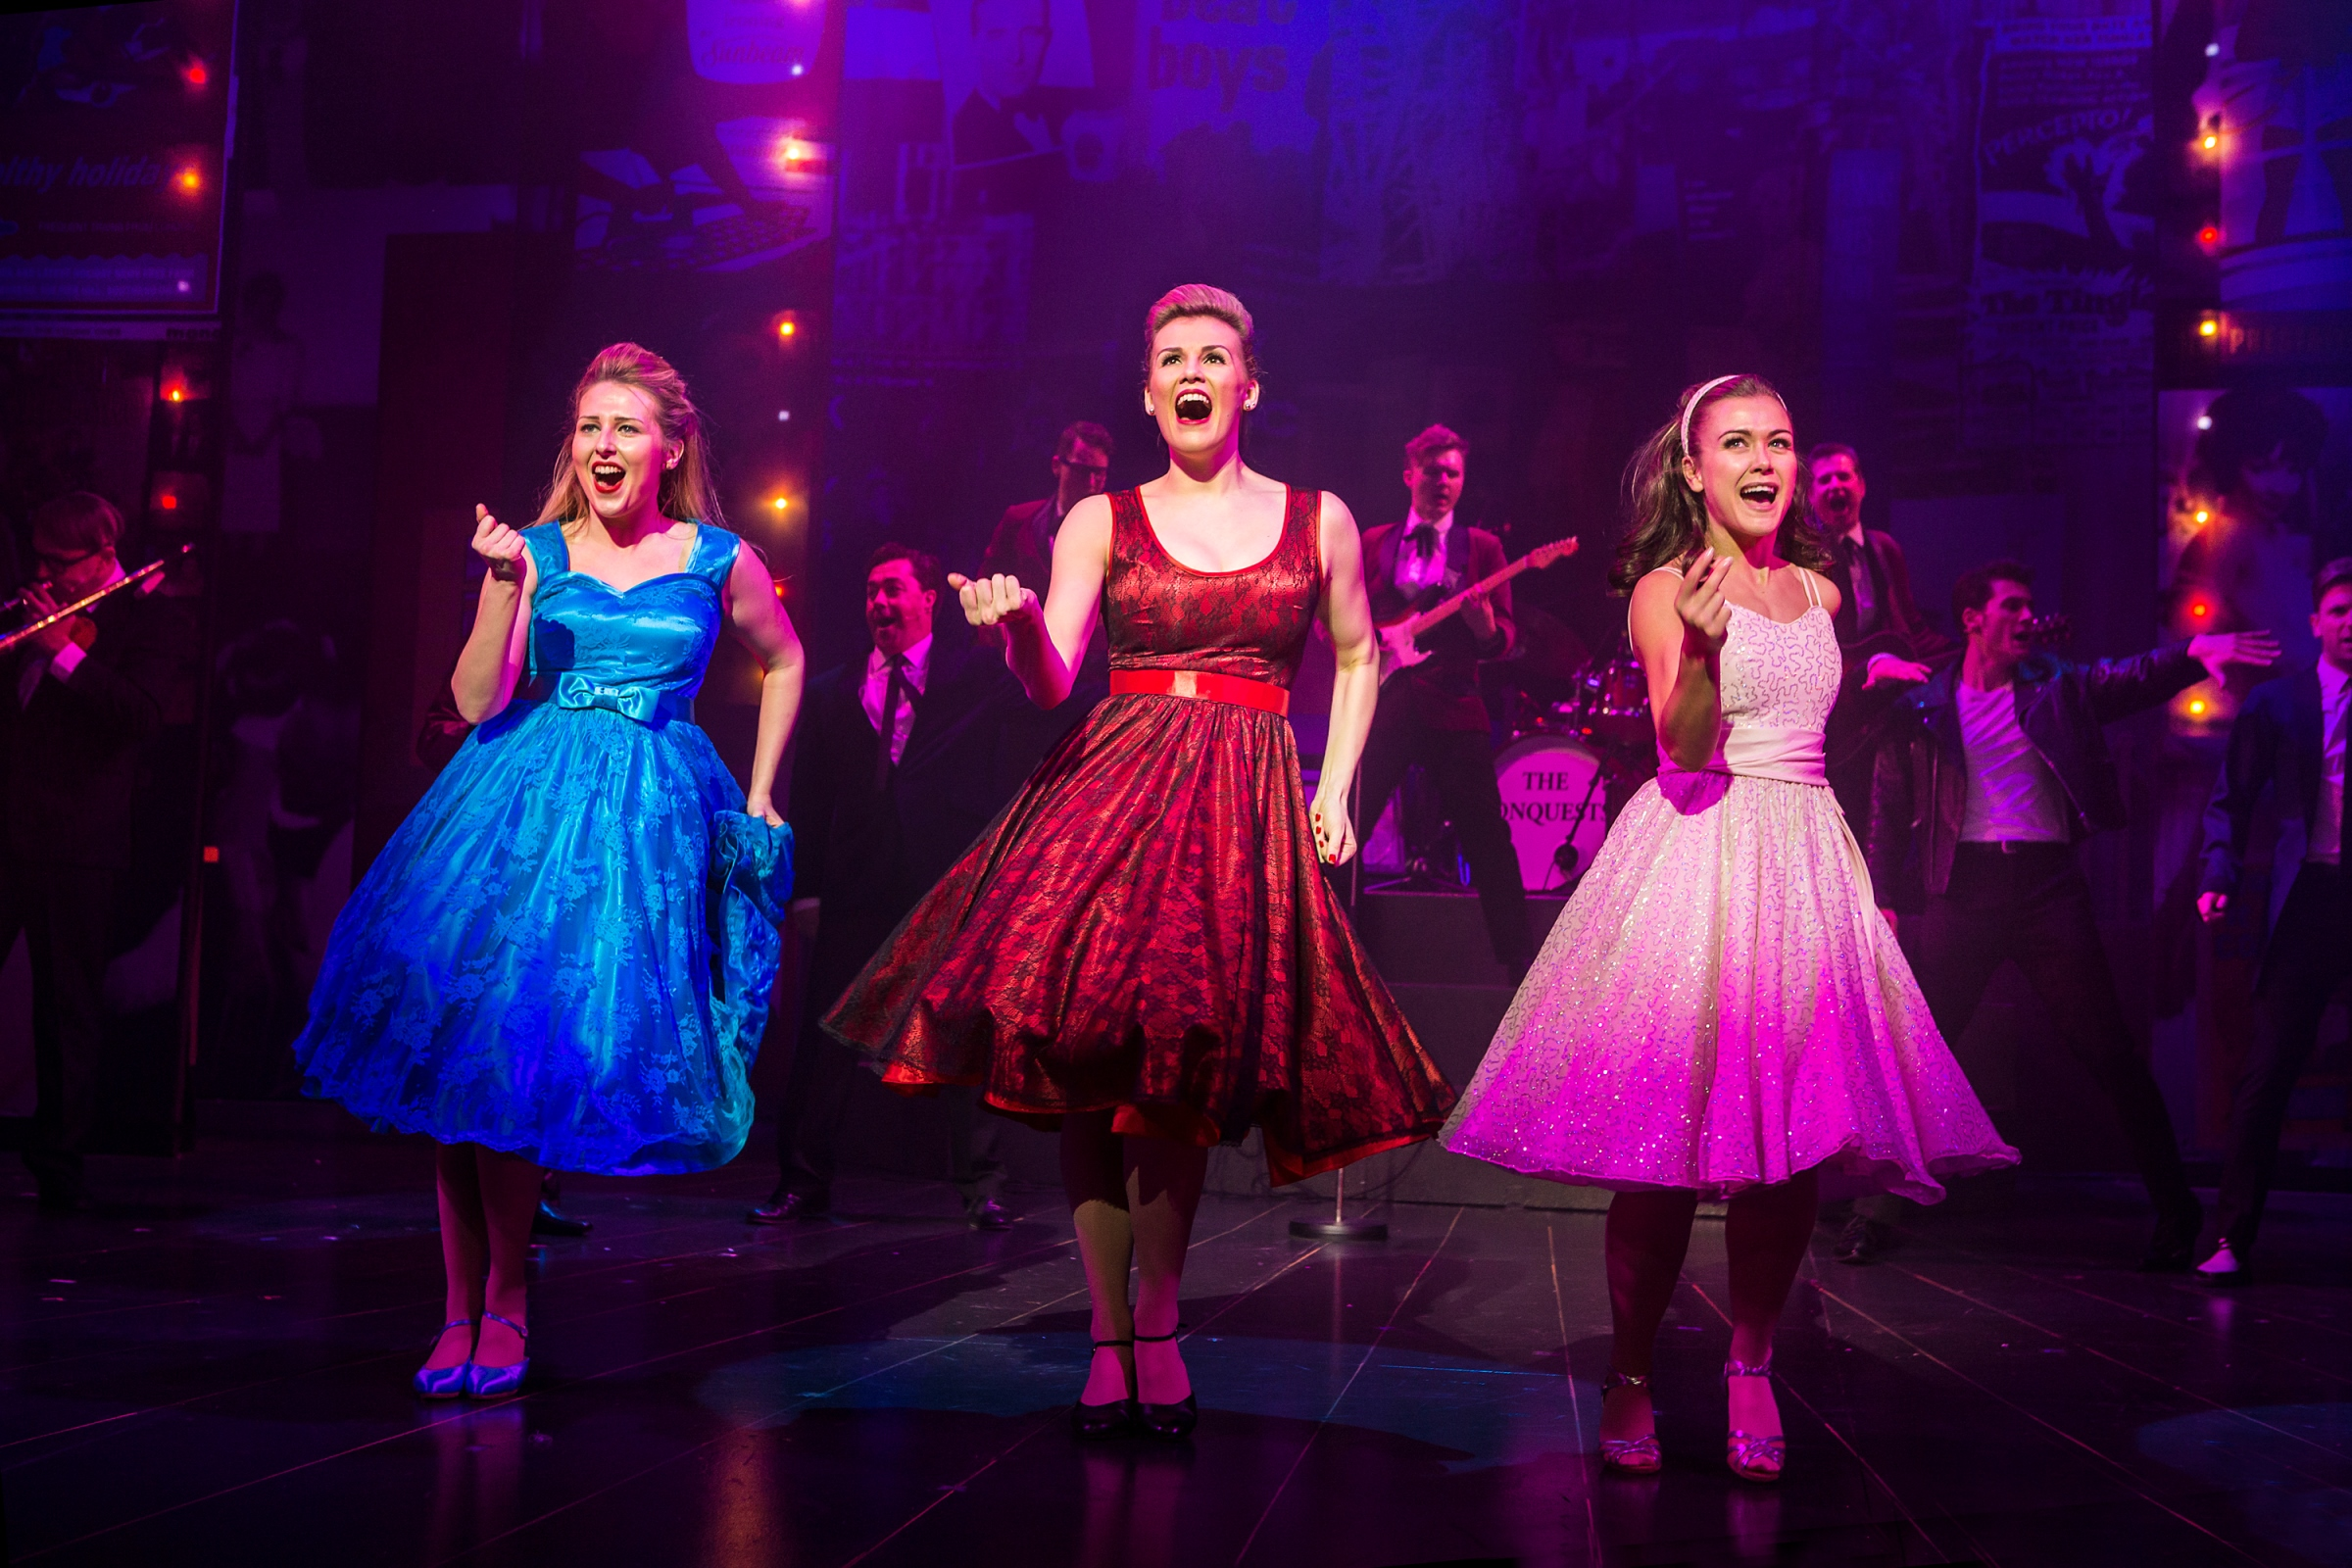 Dreamboats and Petticoats Stage show